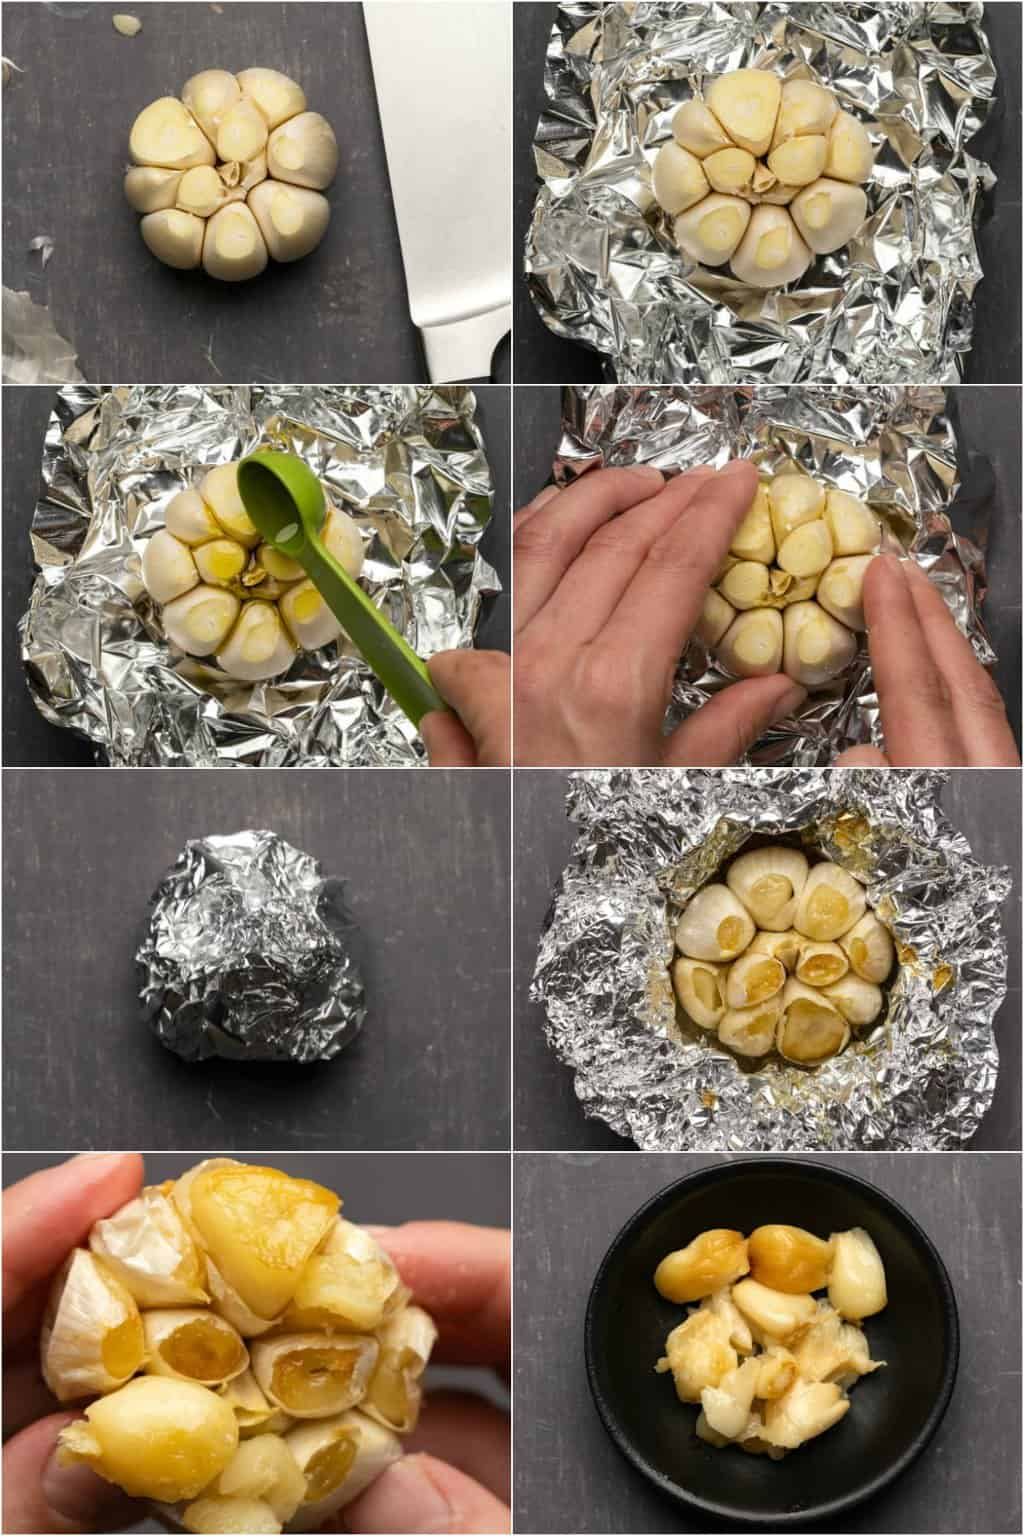 Step by step process photo collage of making roasted garlic.